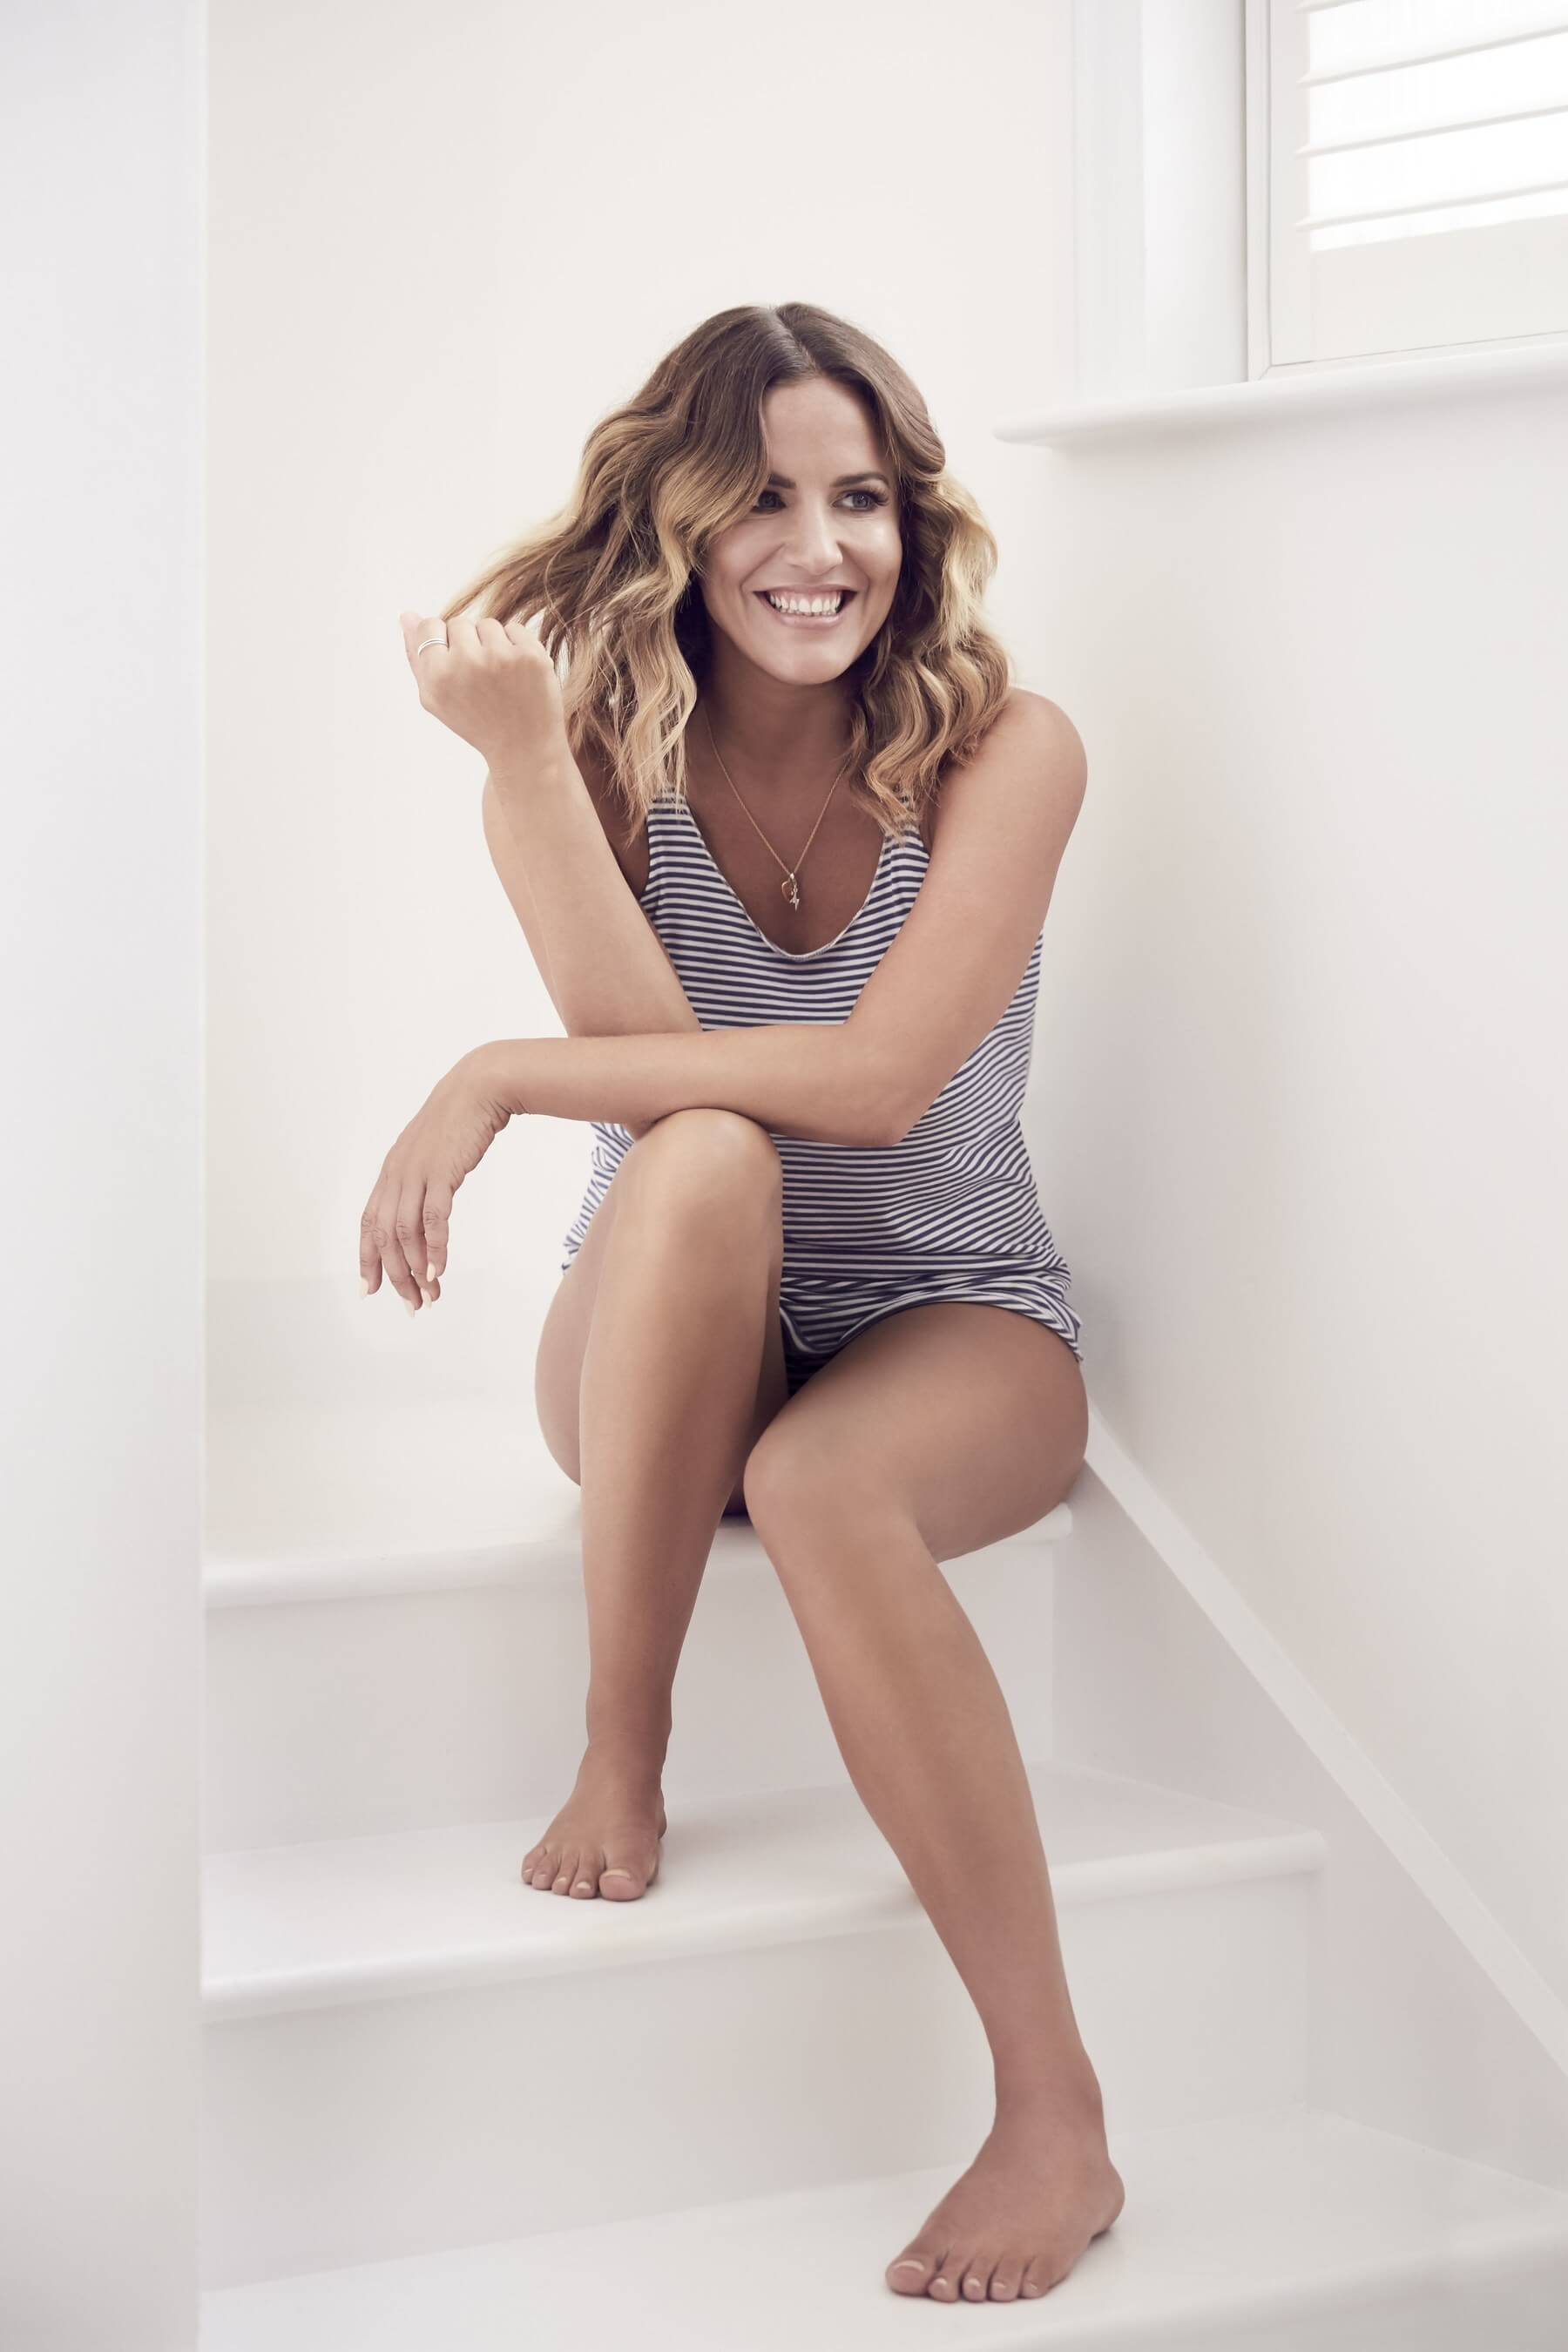 49 Hot Pictures Of Caroline Flack Which Will Make Your